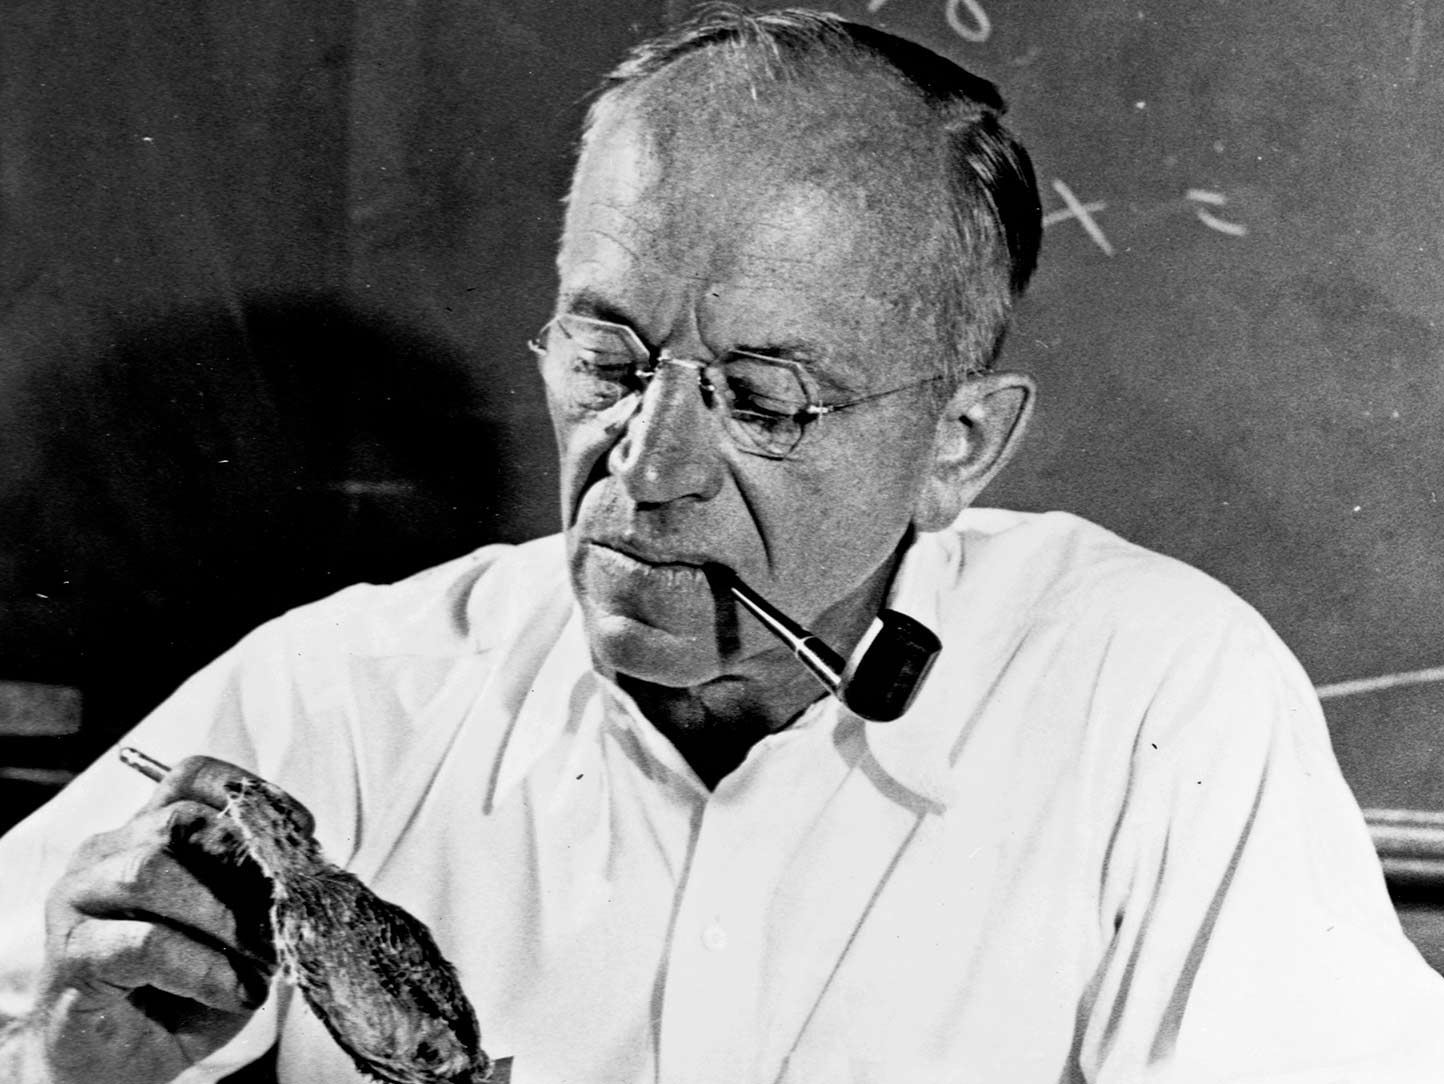 A black and white photo of a man holding specimens.